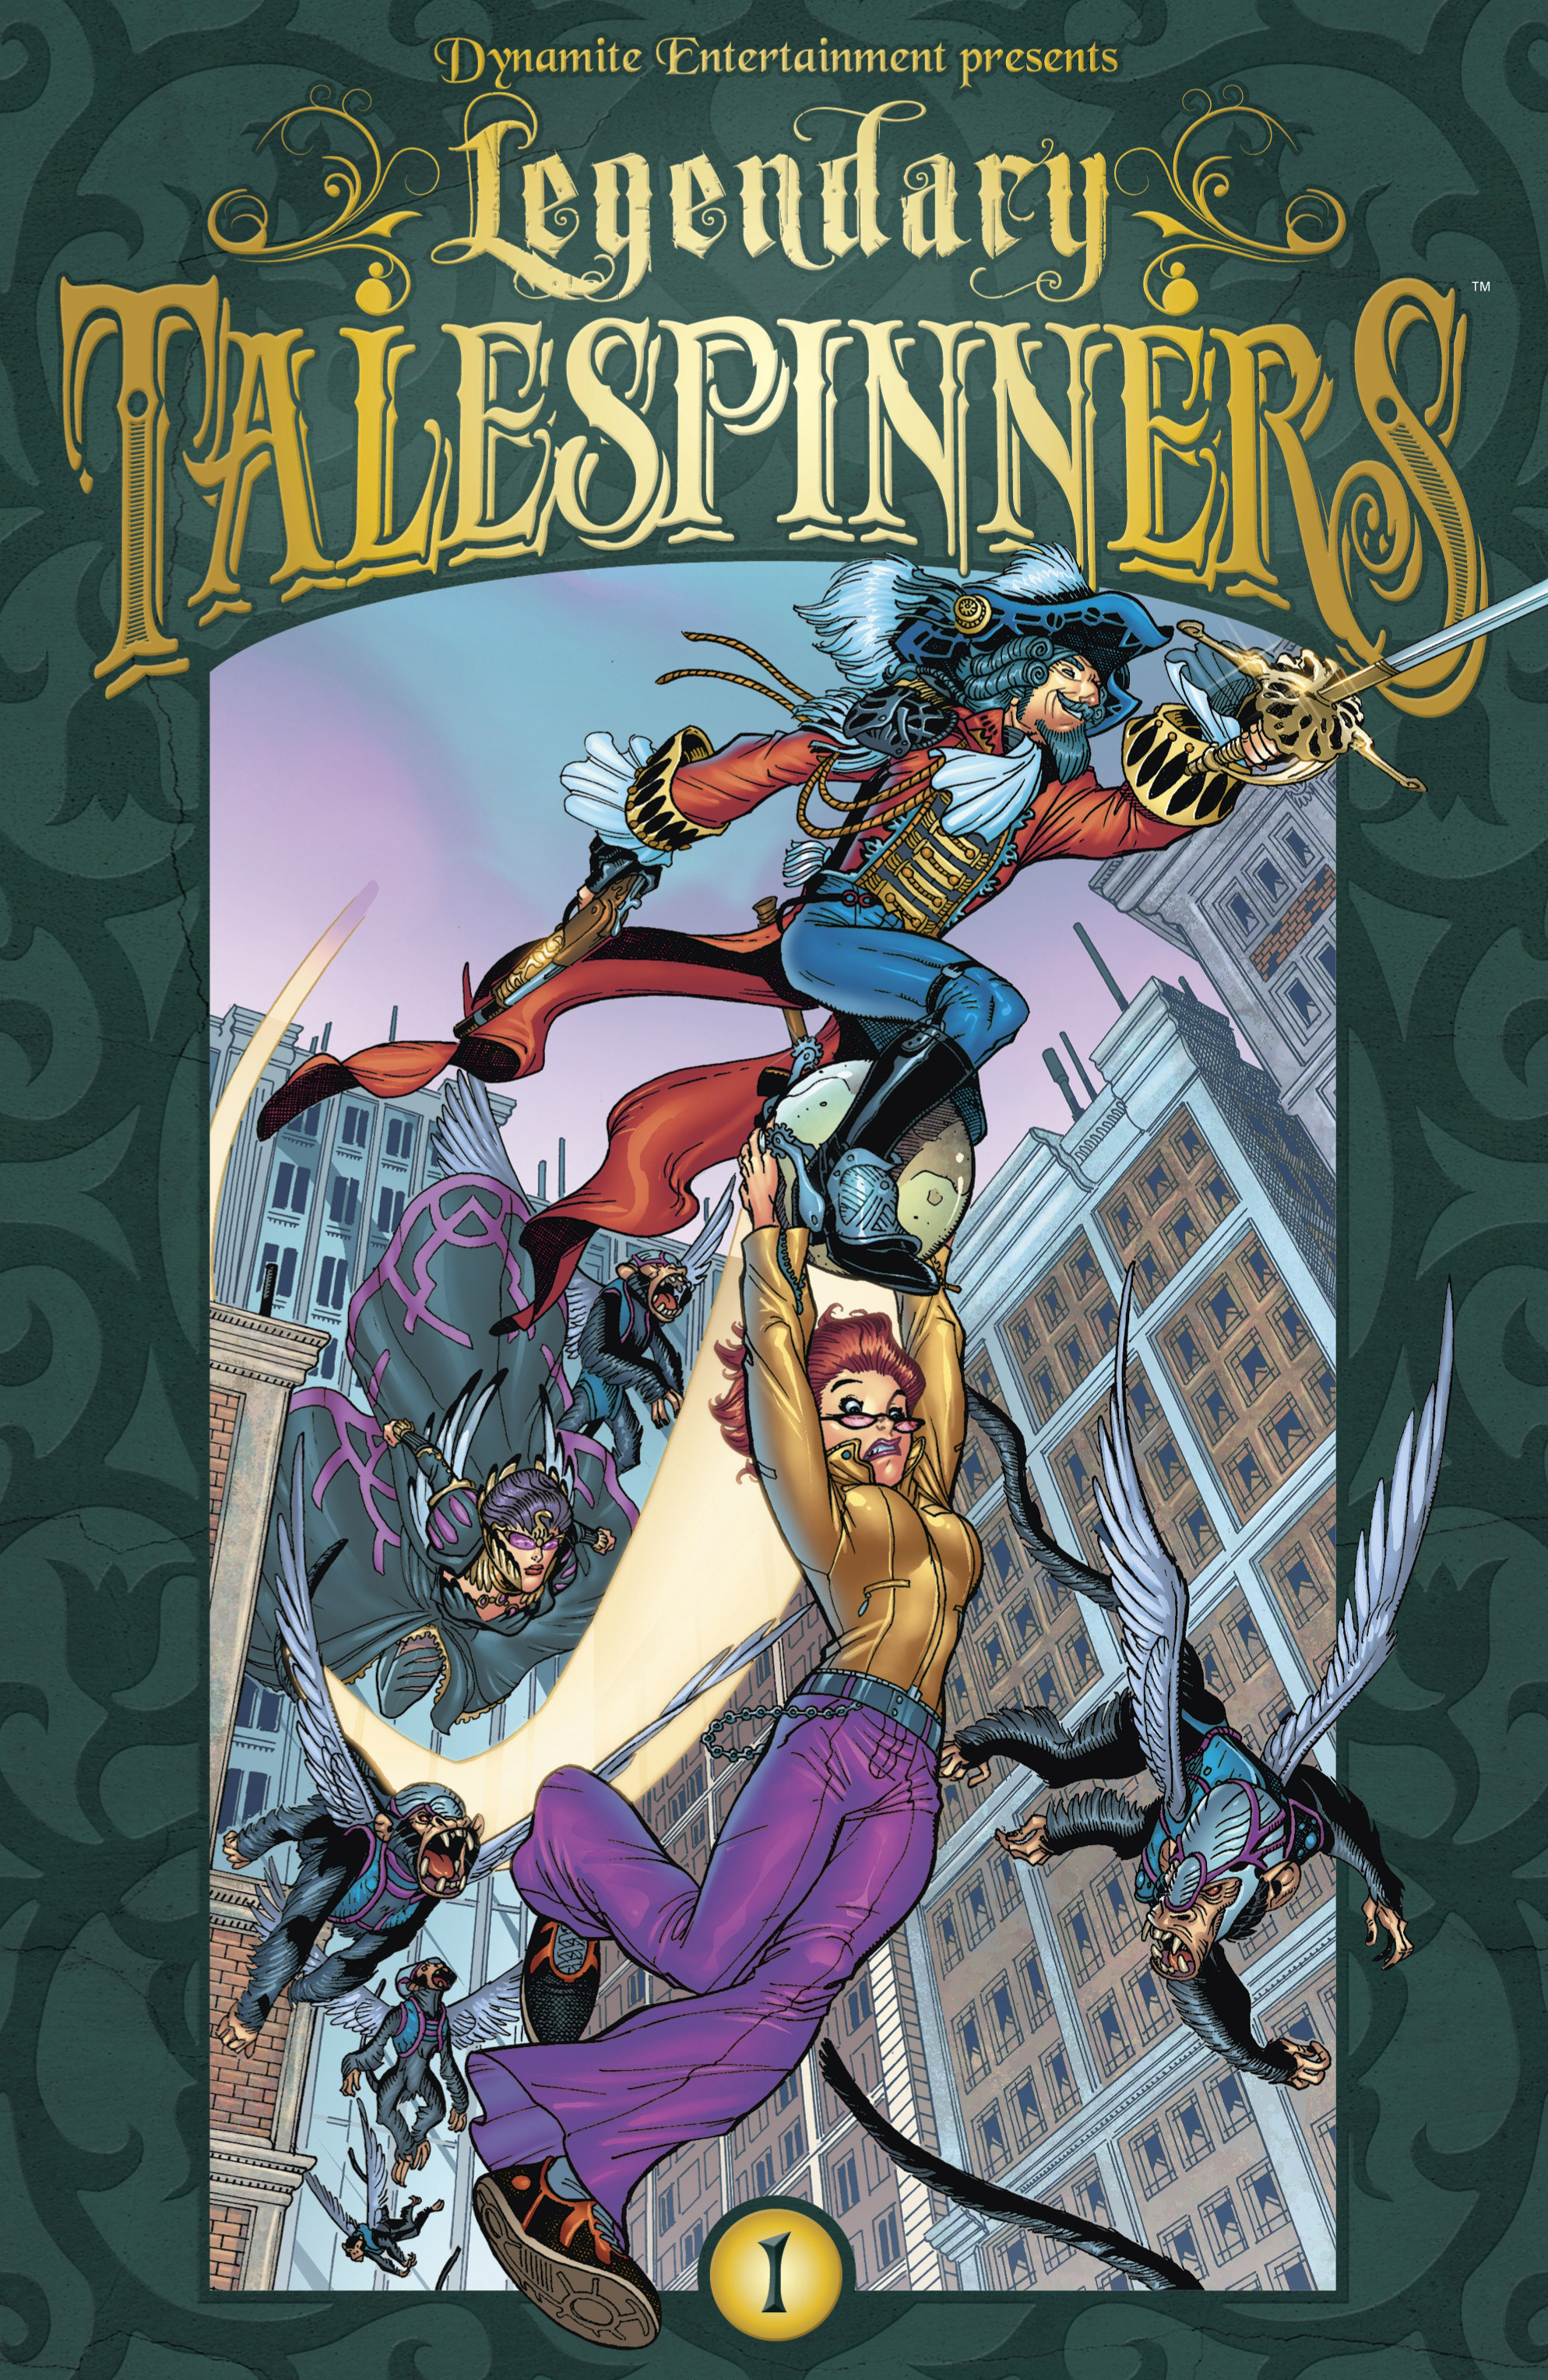 Read online Legendary Talespinners comic -  Issue #1 - 1